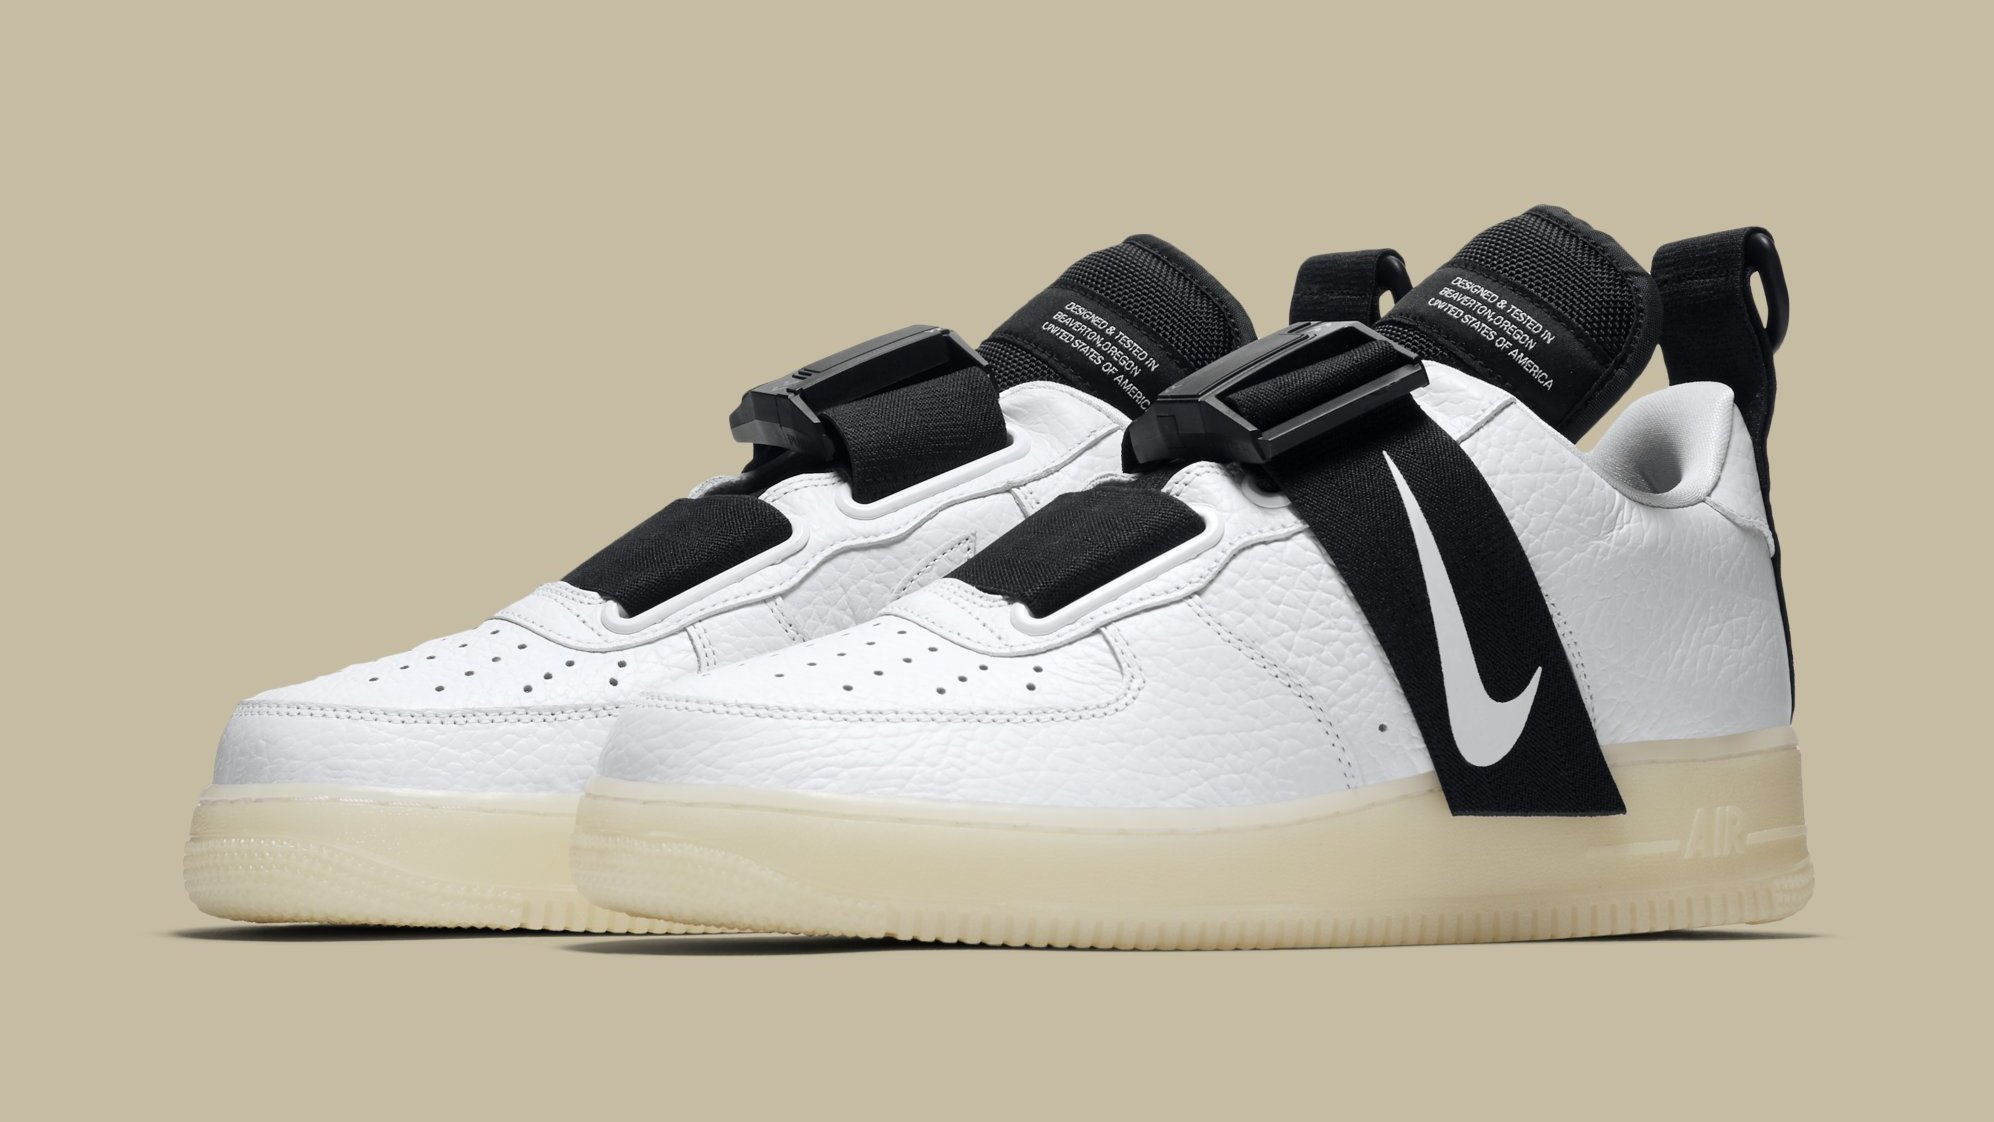 Nike Air Force 1 QS With Glow in the Dark Soles Edition